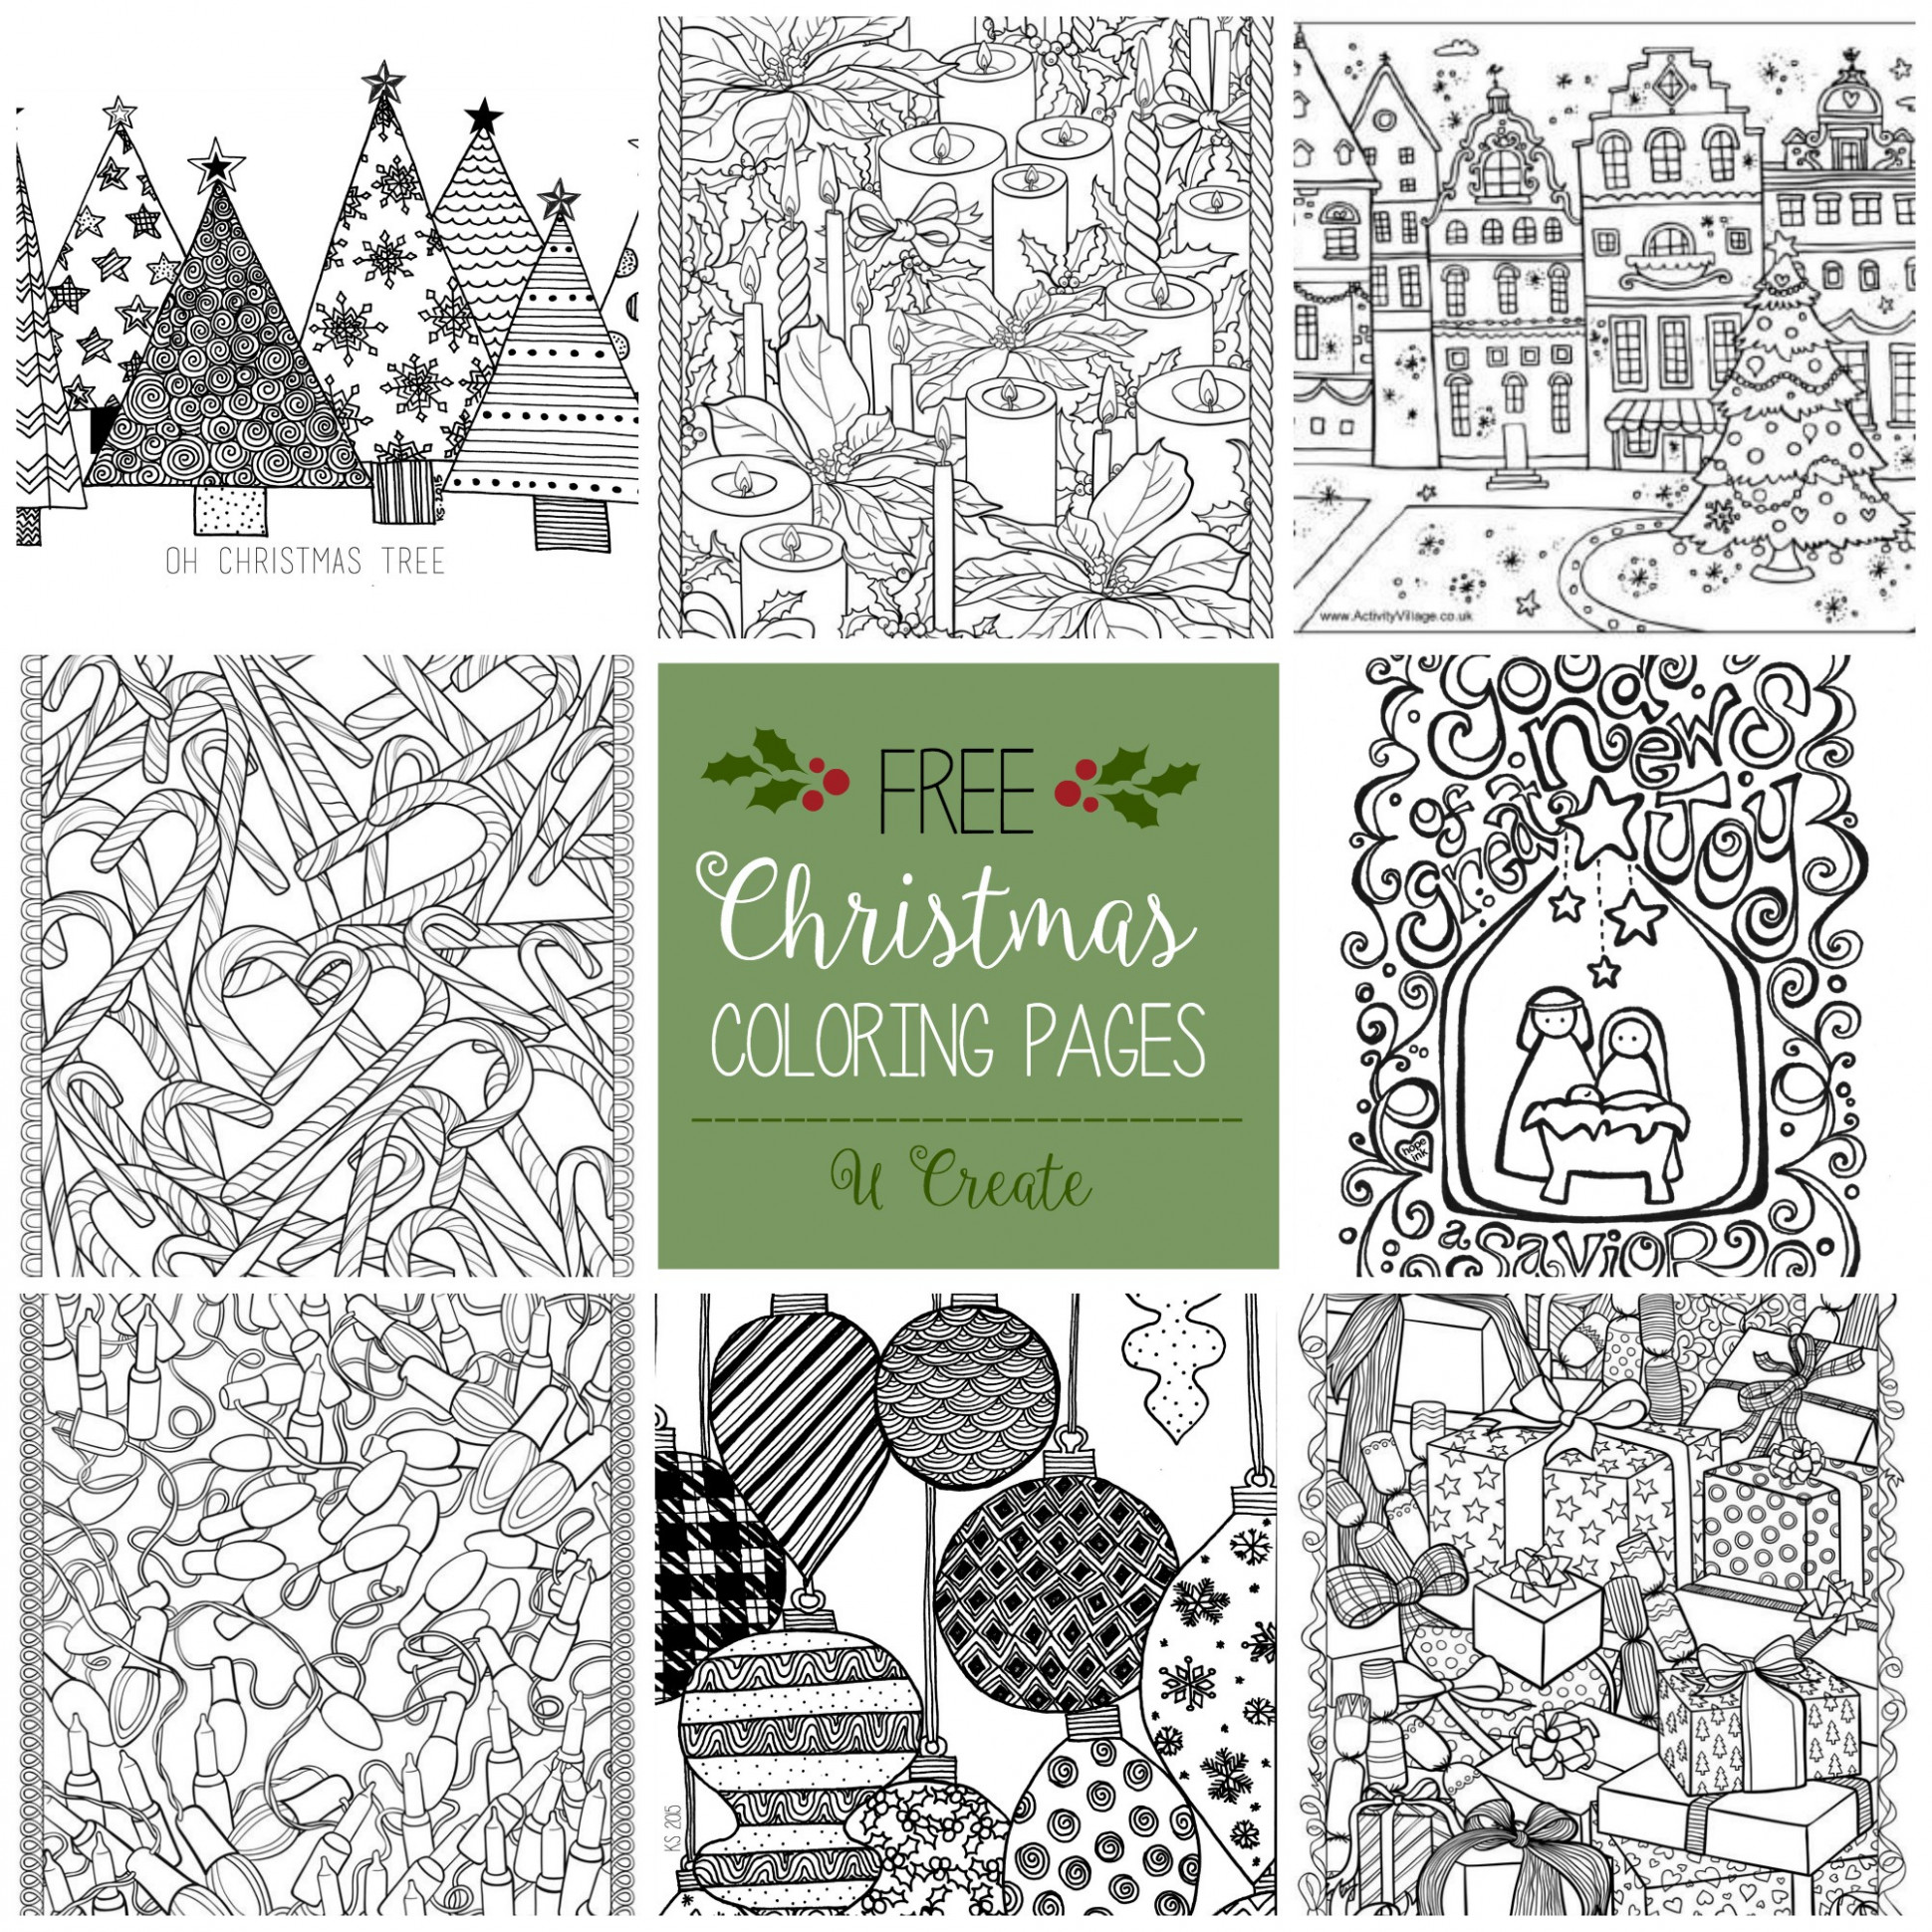 Free Christmas Adult Coloring Pages – U Create – Christmas Coloring For Adults